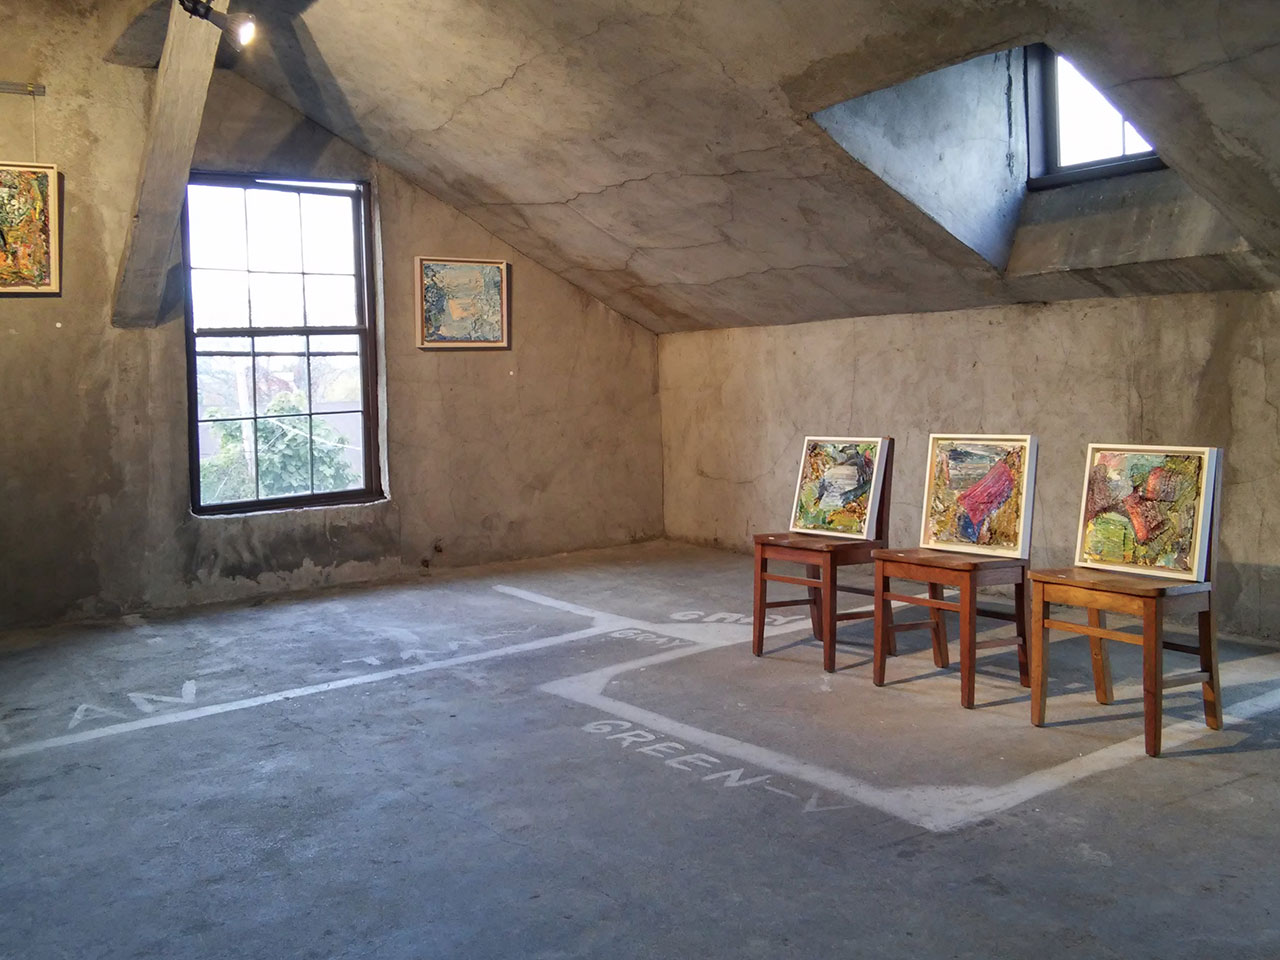 Installation view, 'Ying Li: Paintings' at John Davis Gallery (all photos by the author unless otherwise noted)